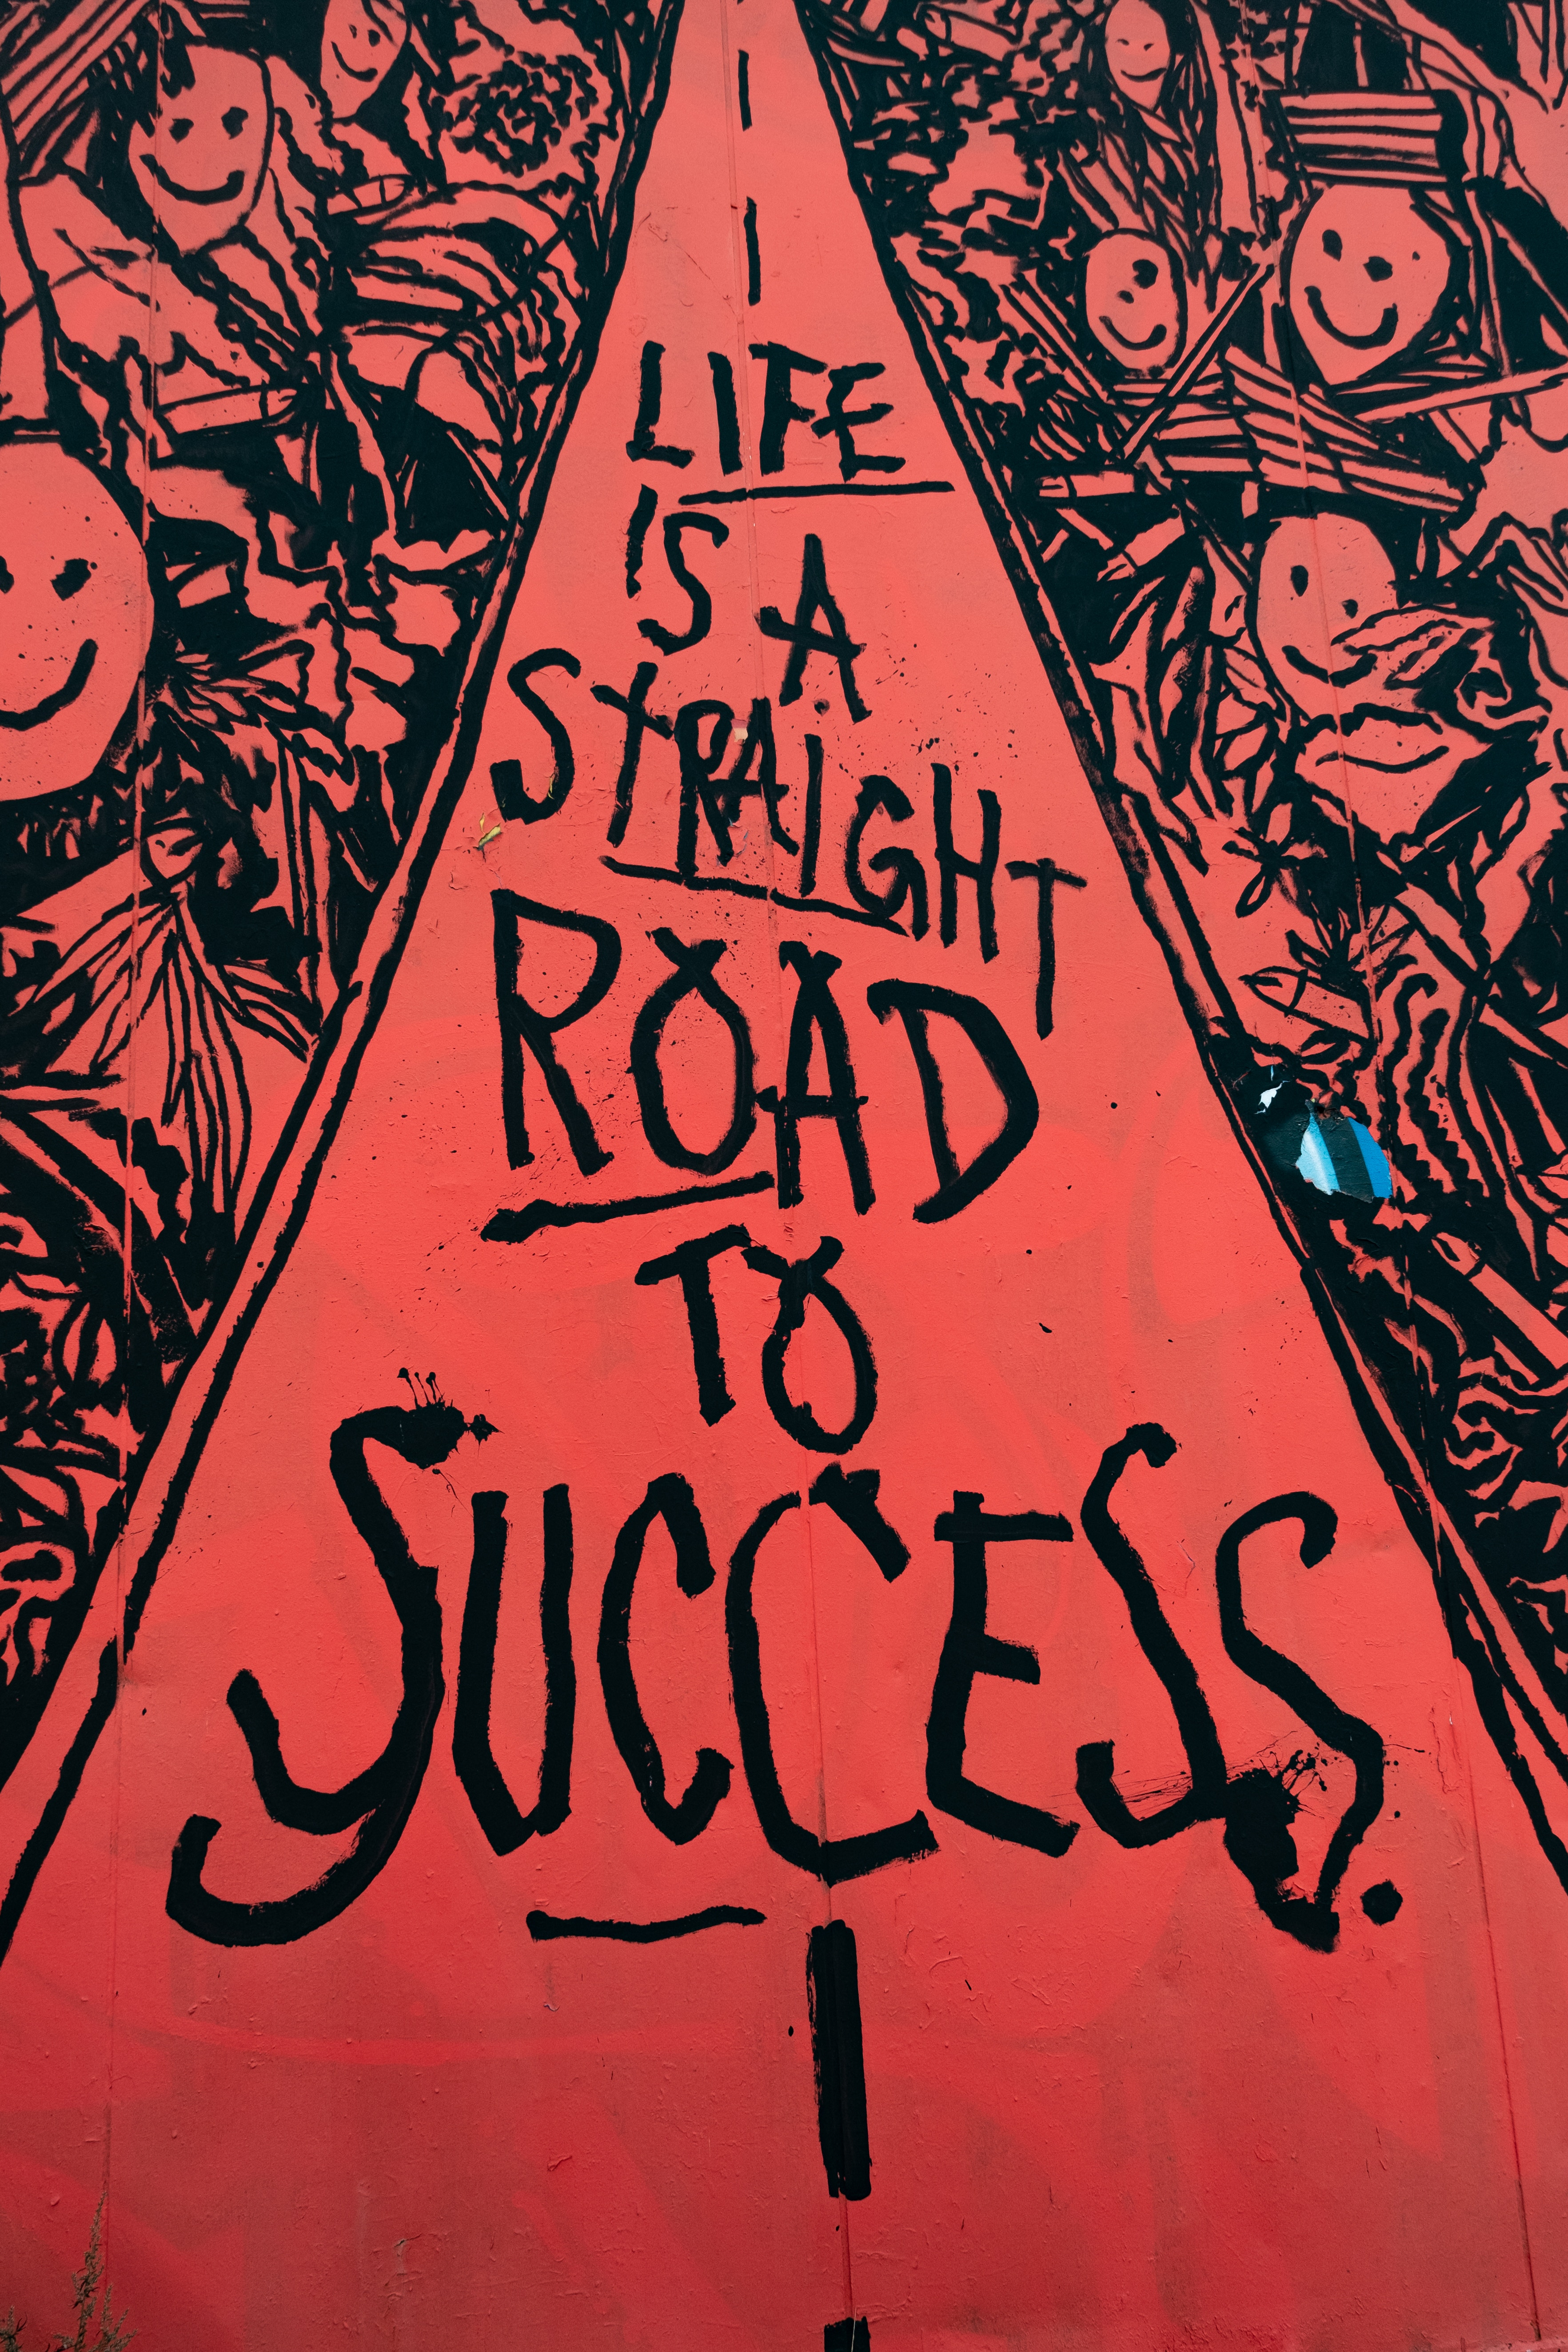 Red road says life is a straight road to success